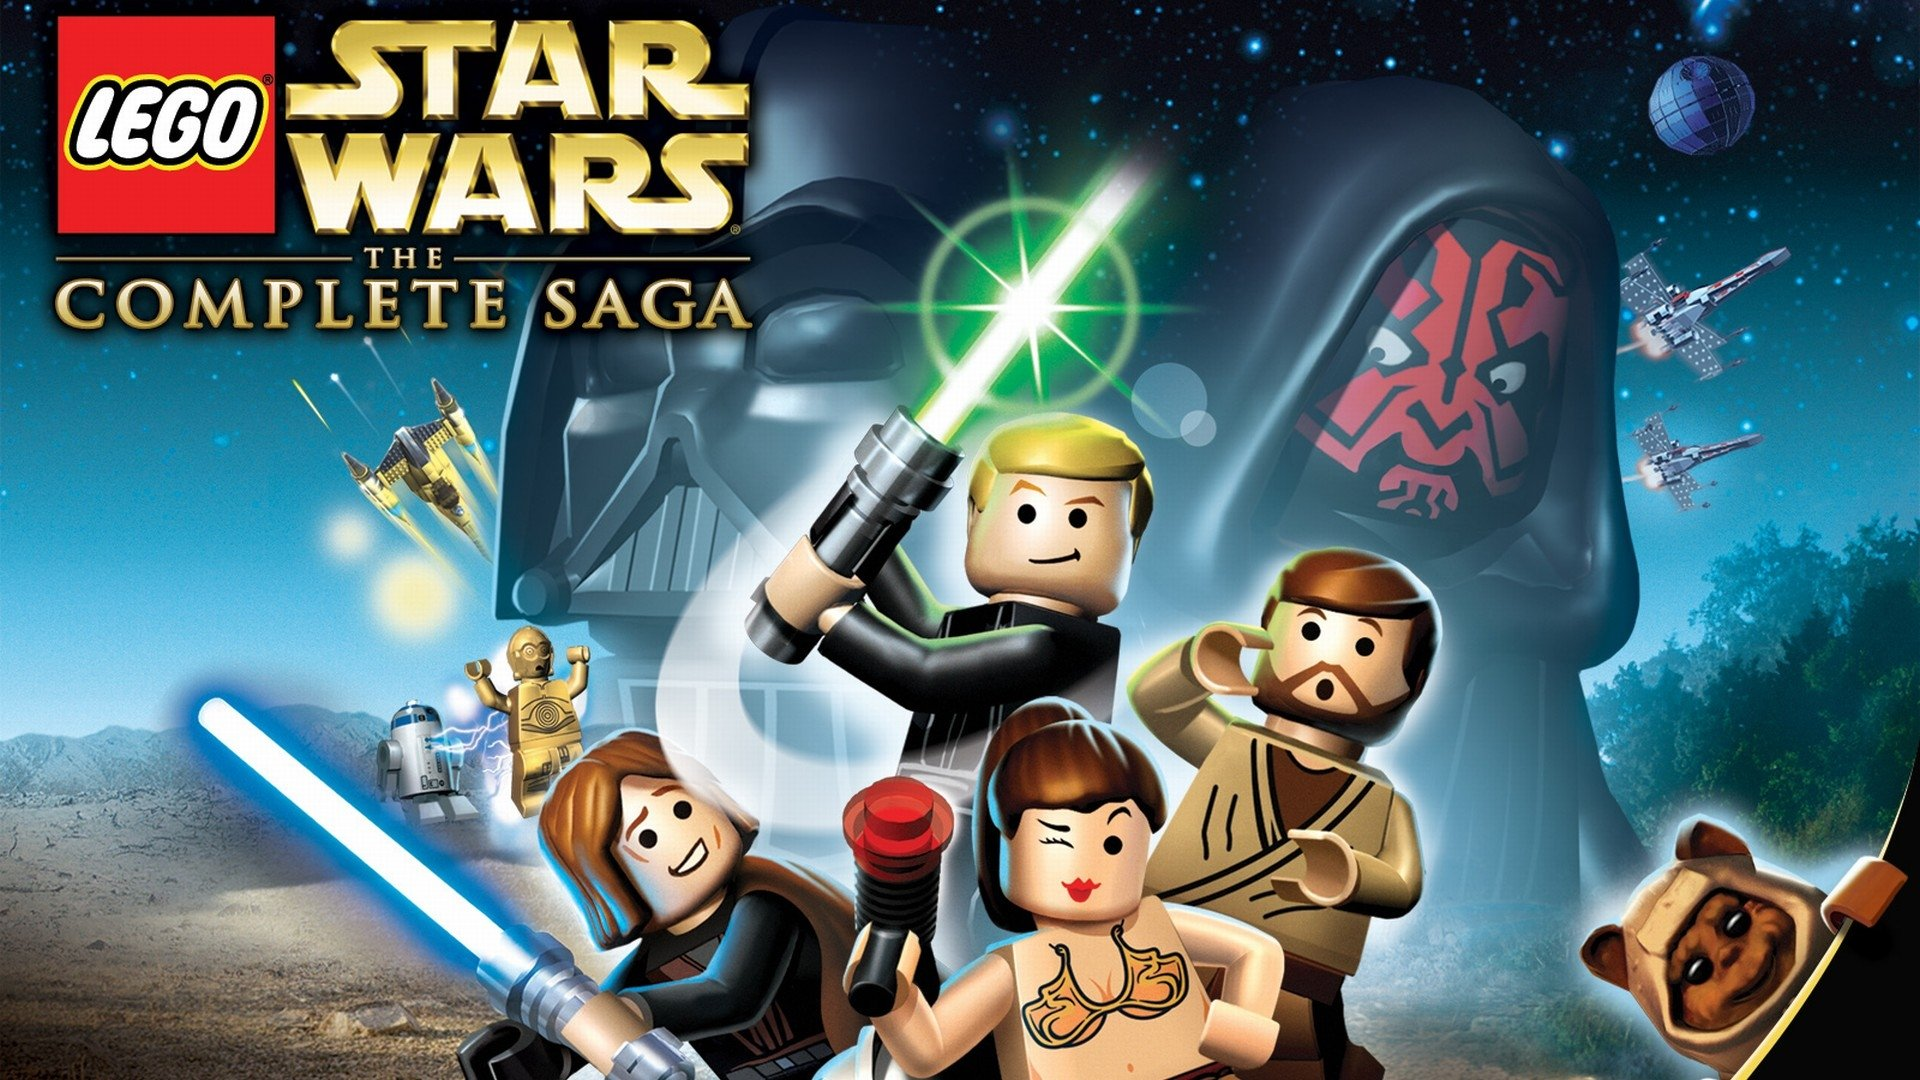 Lego Star Wars Iphone Wallpaper Lego Star Wars The Complete Saga Full Hd Wallpaper And